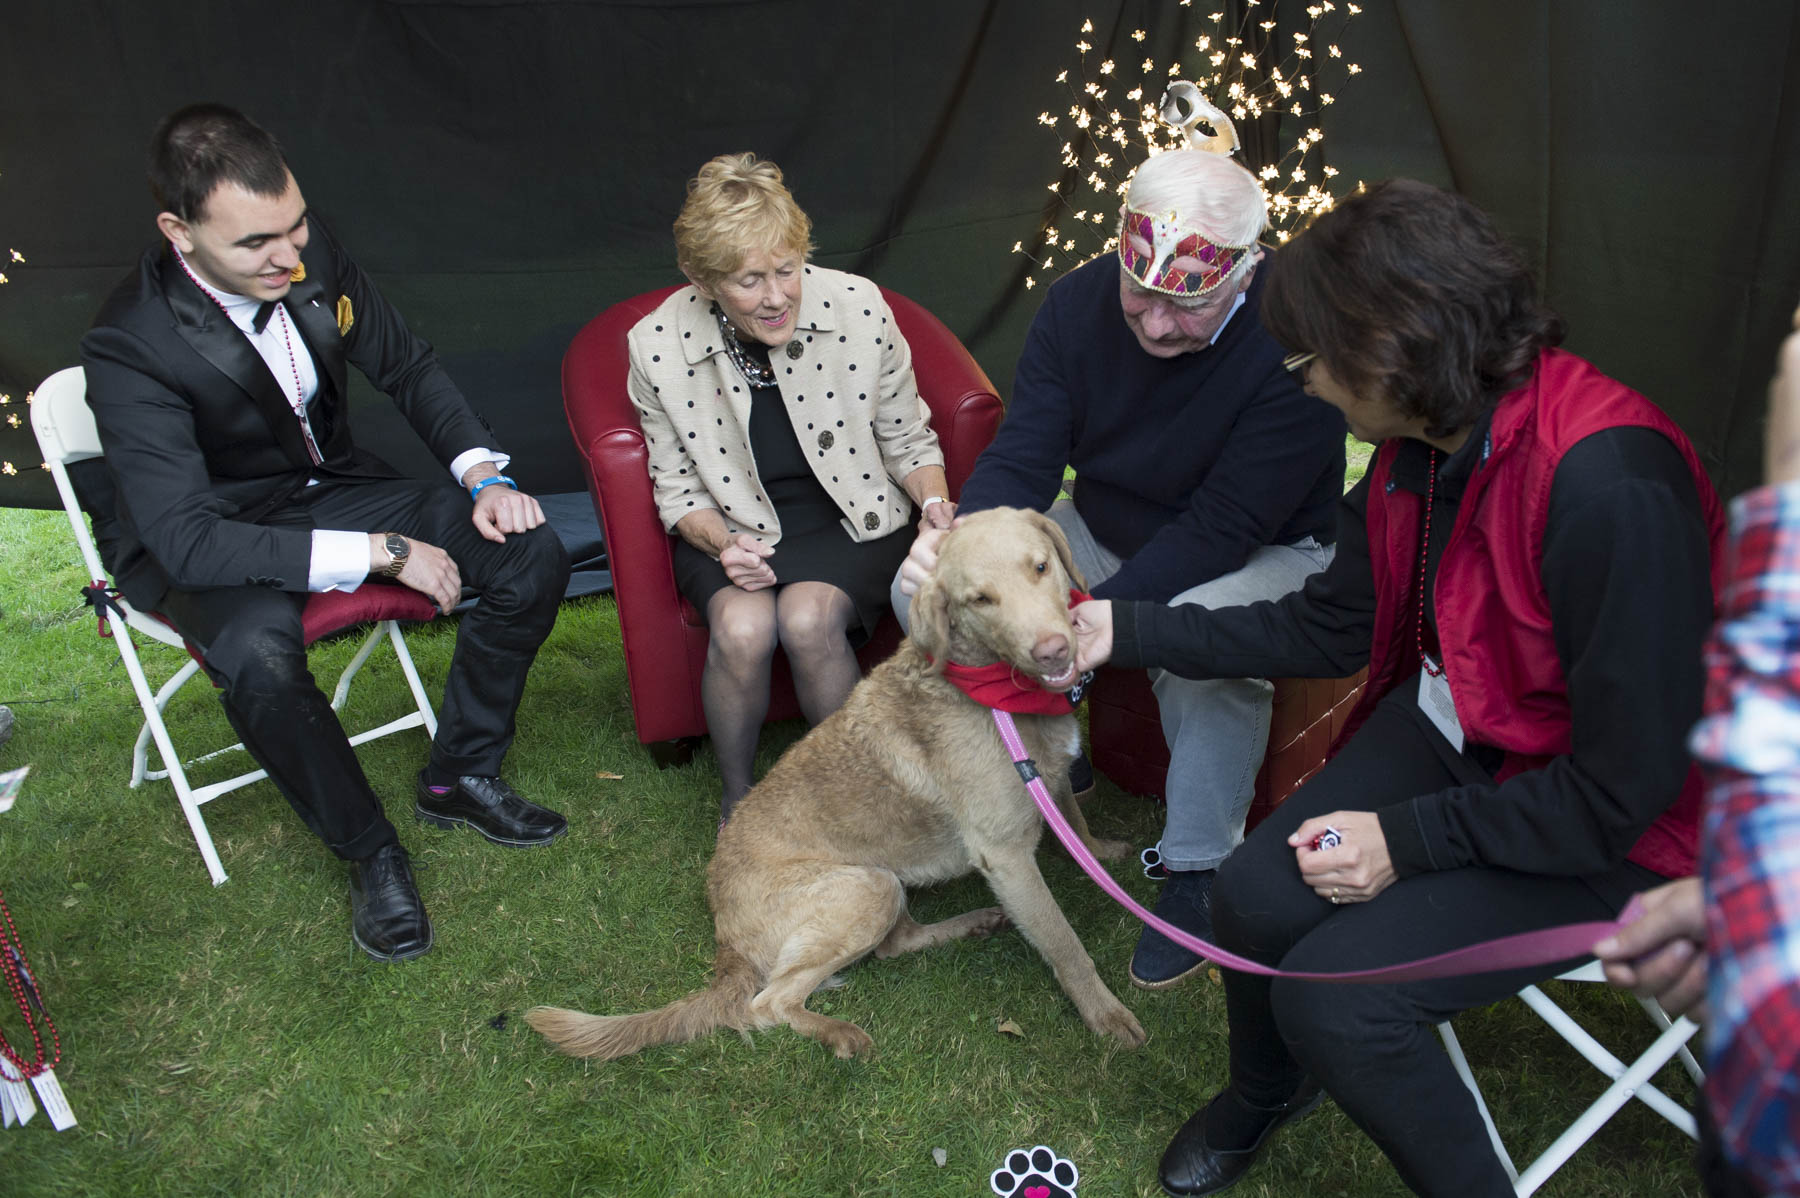 The zone featured mental health organizations providing a wide breadth of information from how to support and care for loved ones, to empowering young people to promote their own well-being as well as others. Ottawa Therapy Dogs participated in the event.